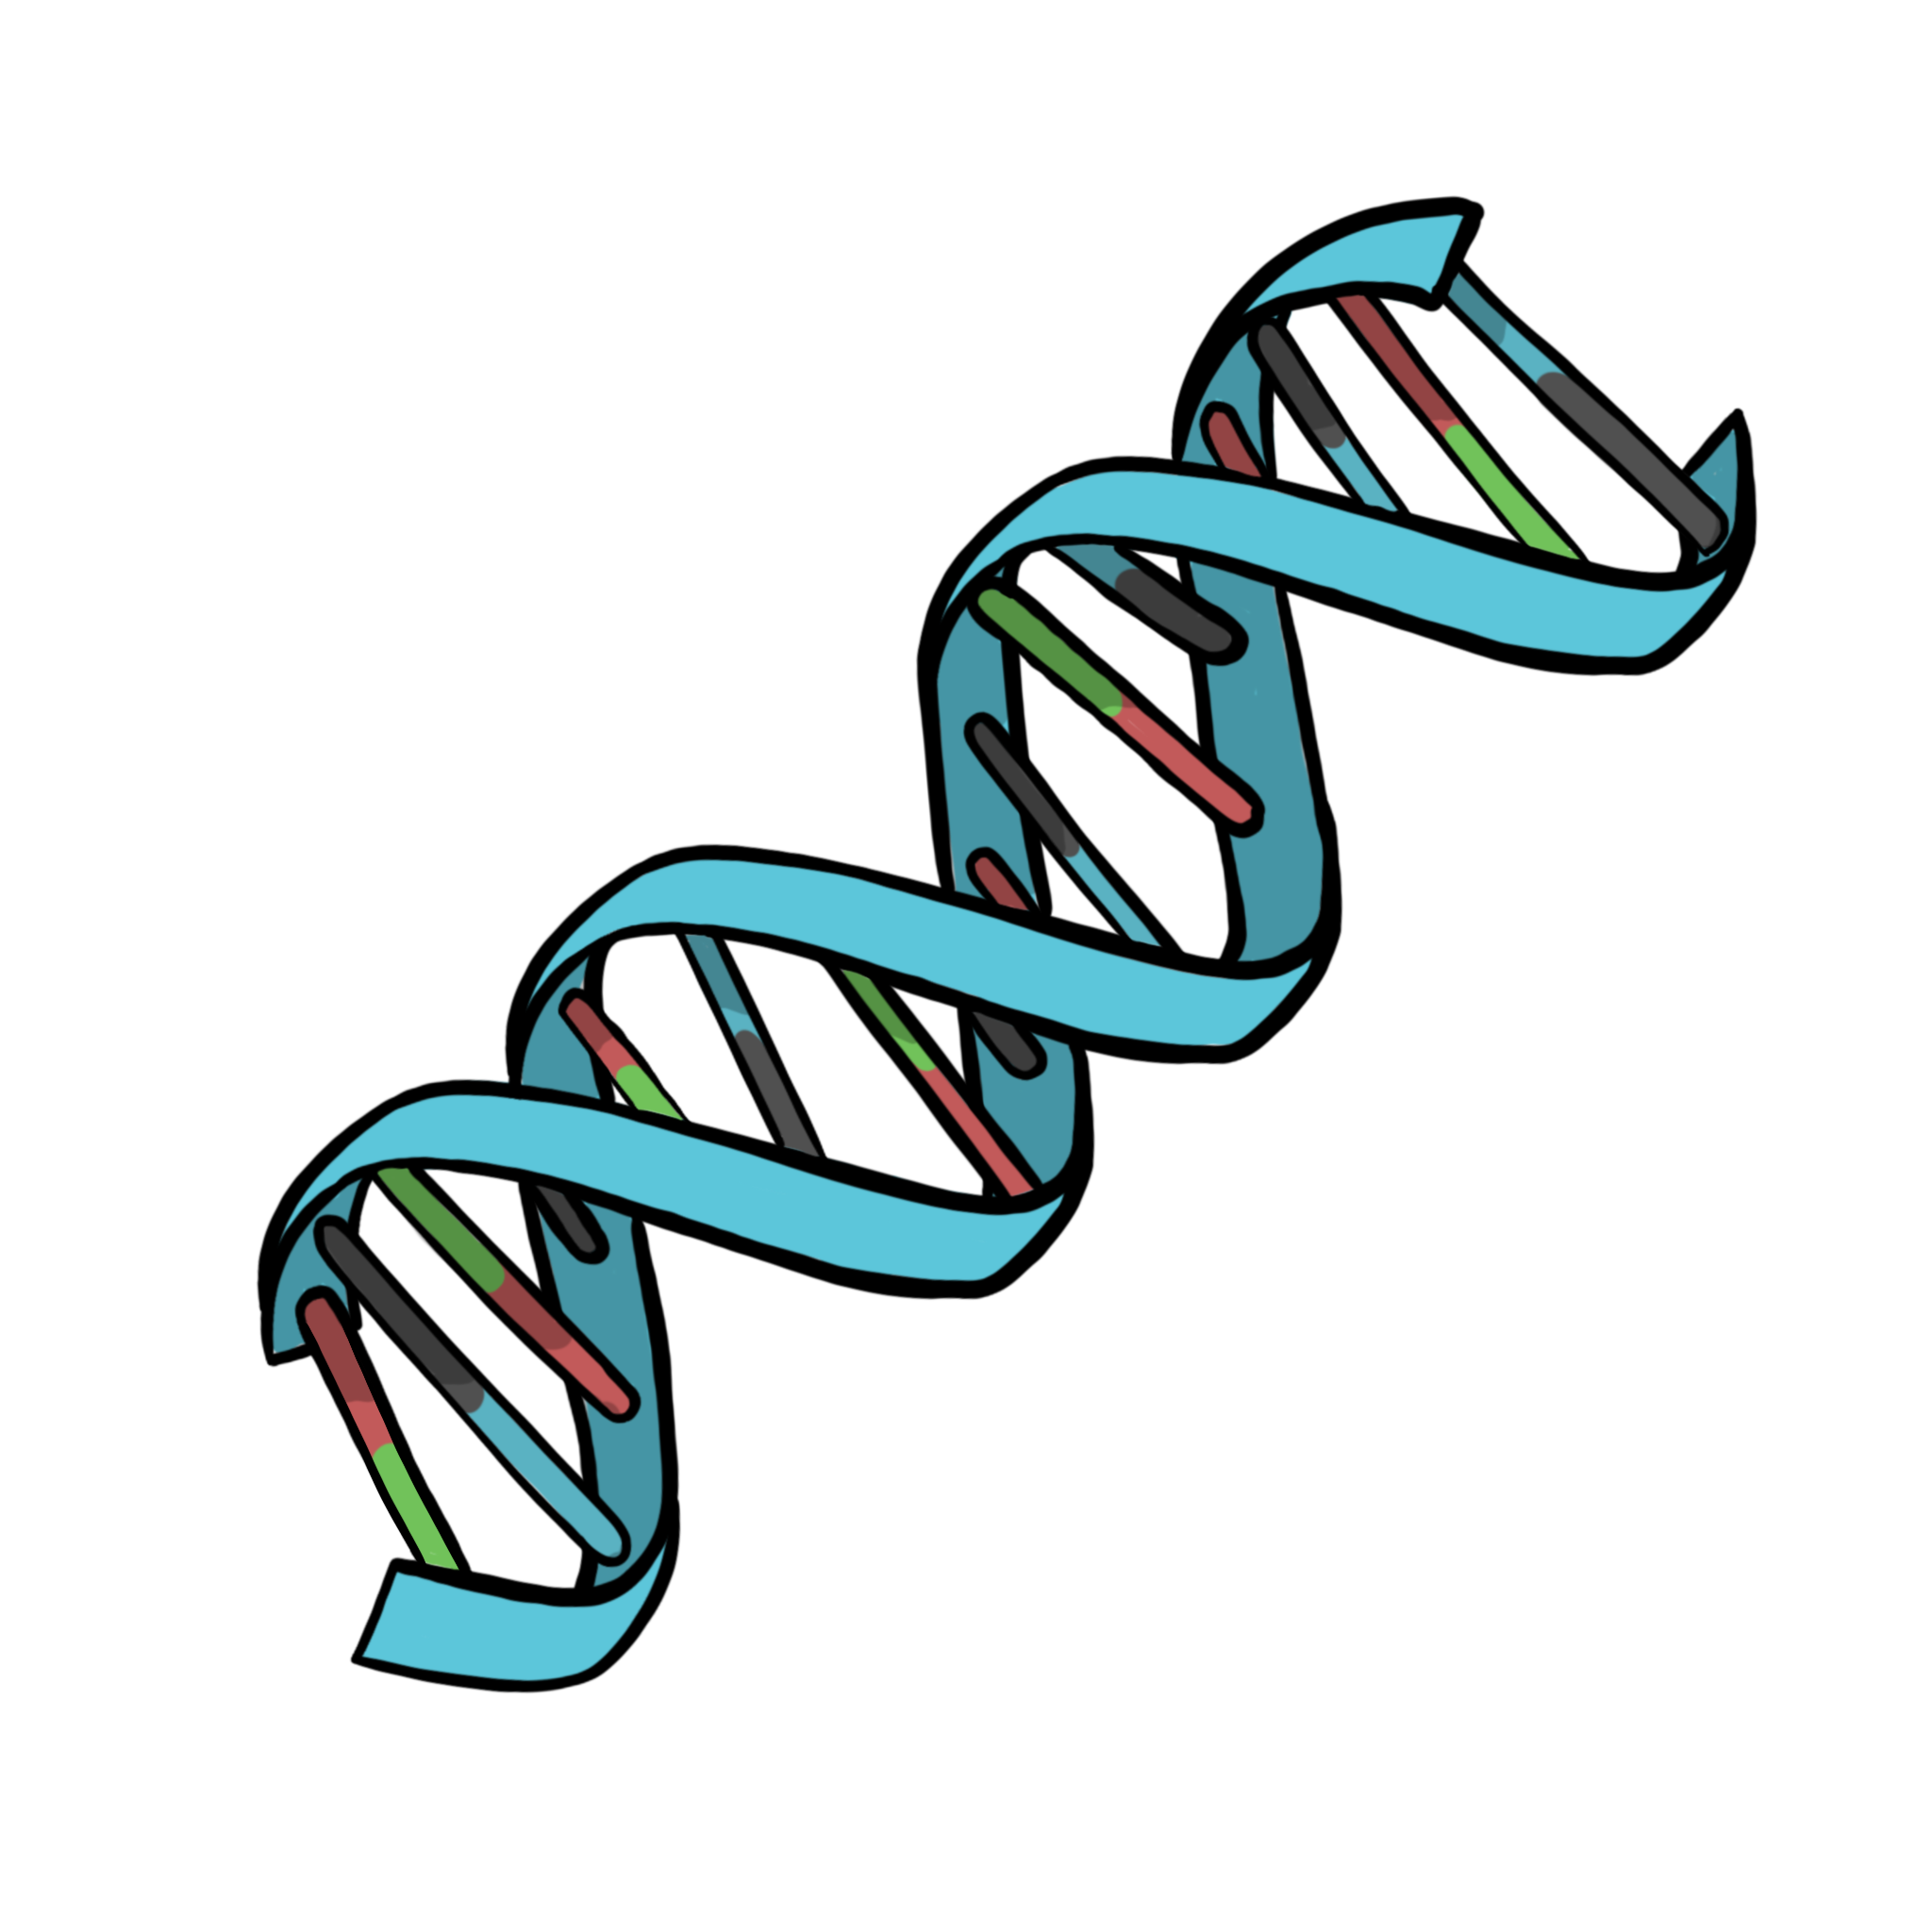 Drawing of DNA